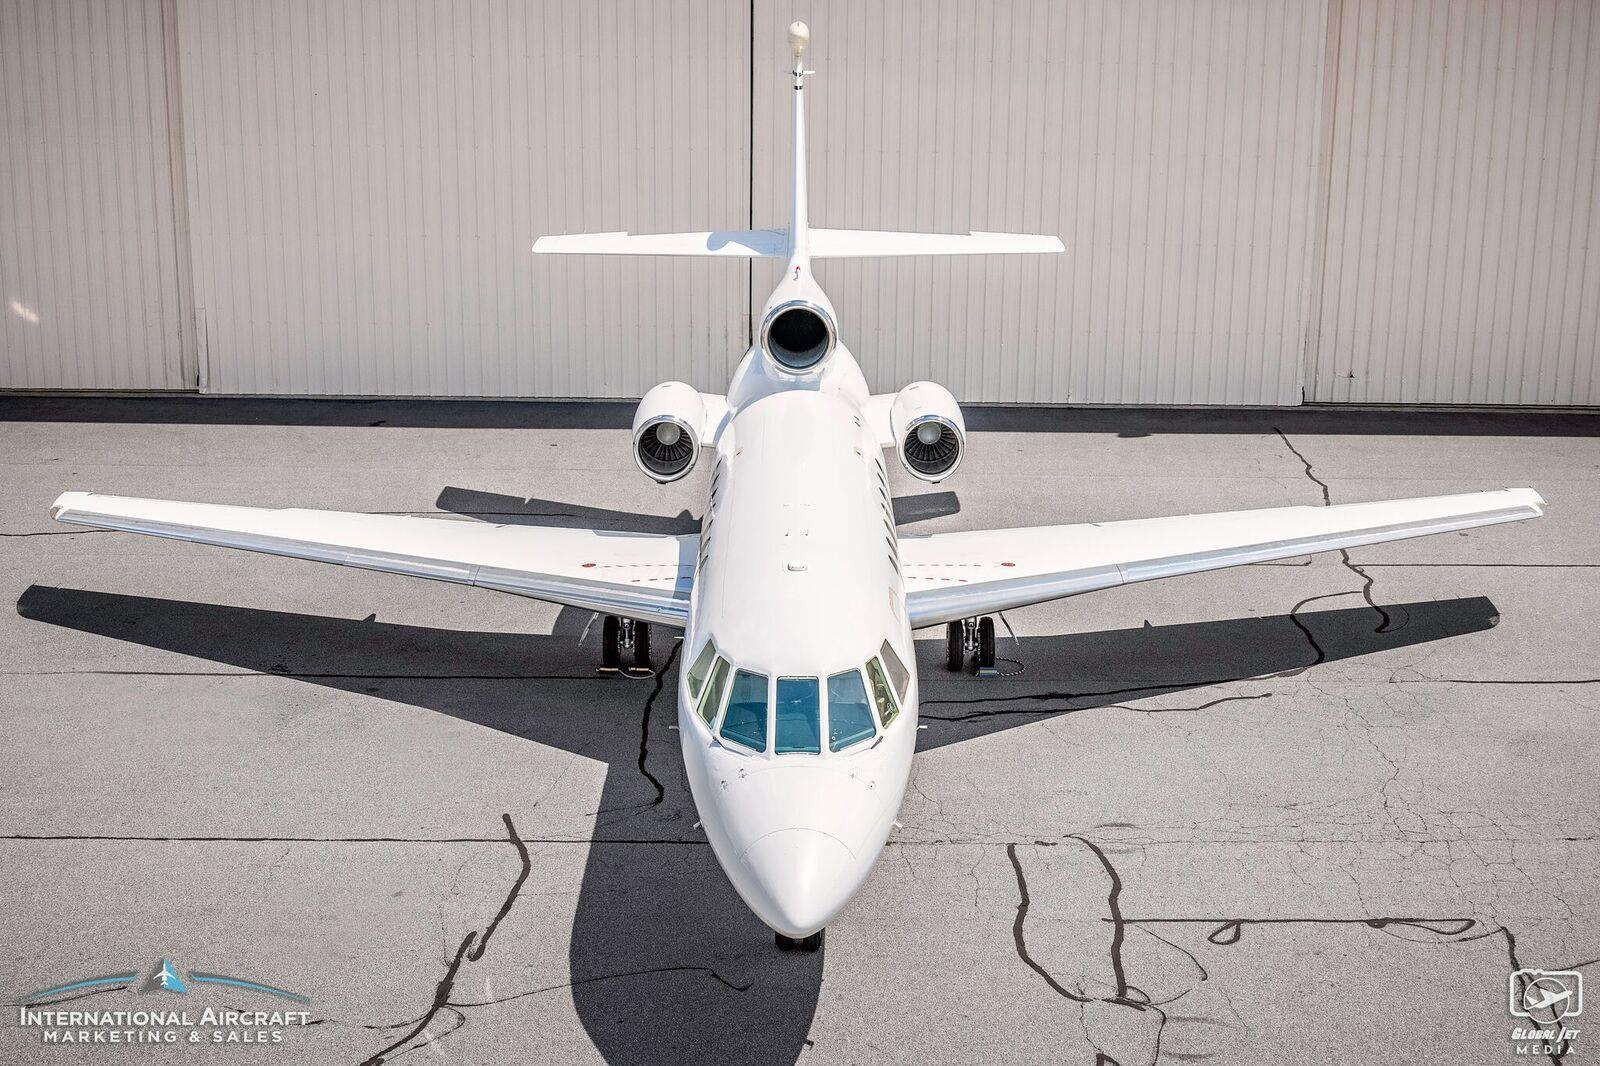 Dupage Aviation to Purchase 5 More Business Jets to Meet Leasing Demand Amid COVID-19 Pandemic